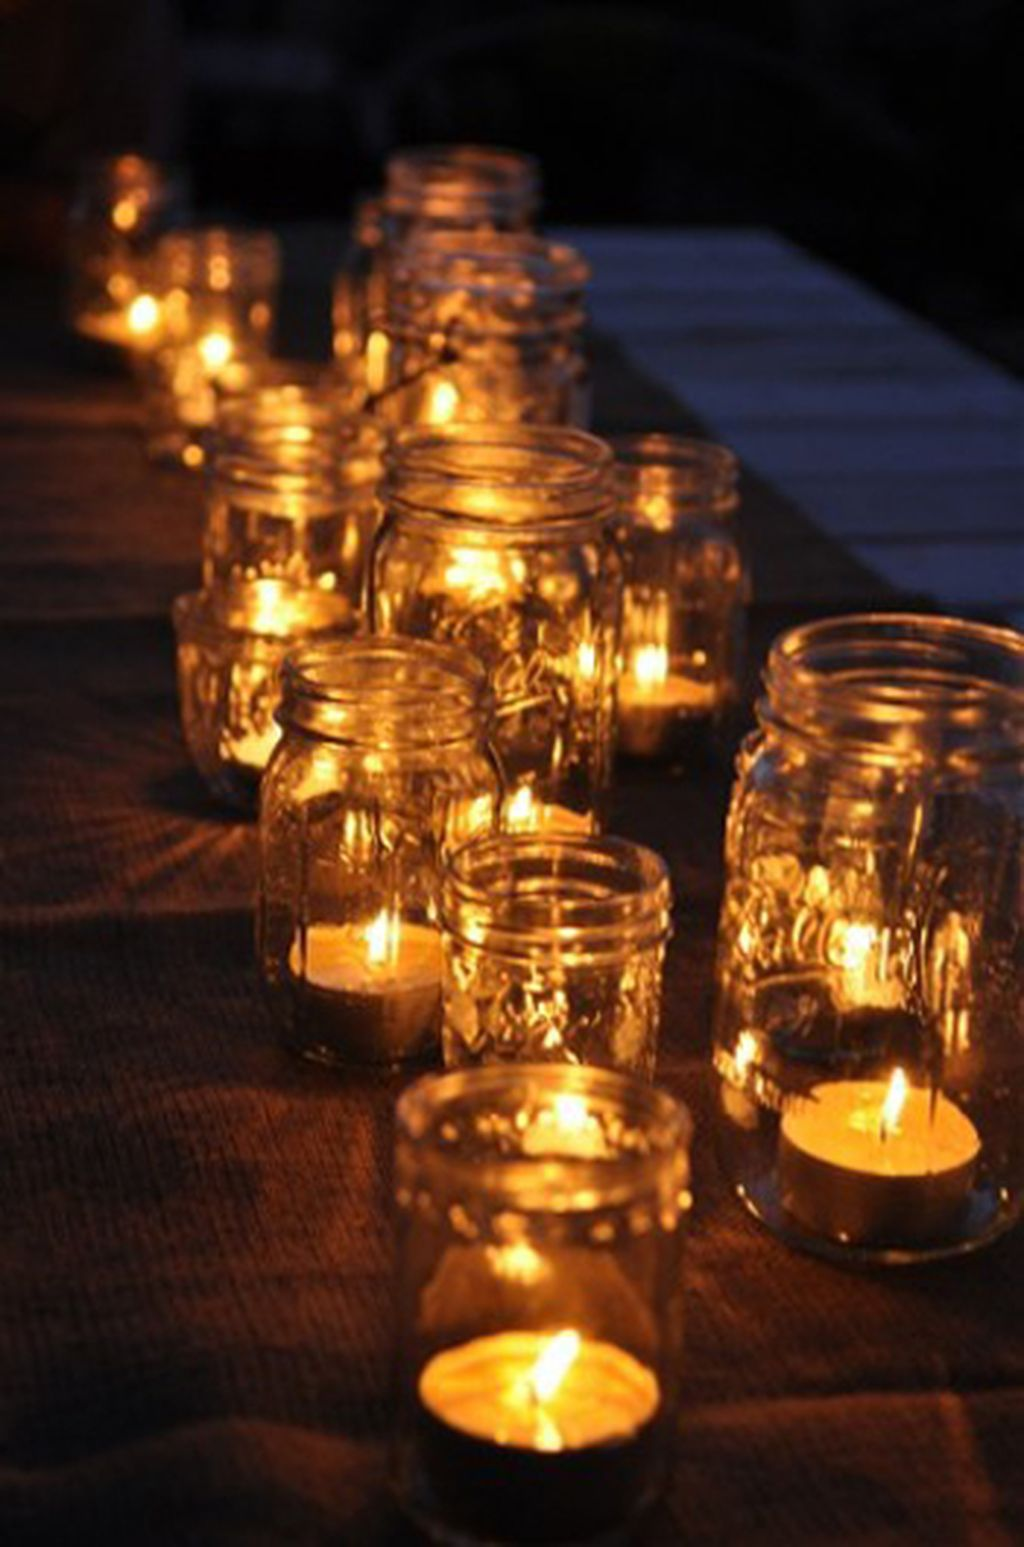 Inspiring Modern Rustic Christmas Centerpieces Ideas With Candles 38